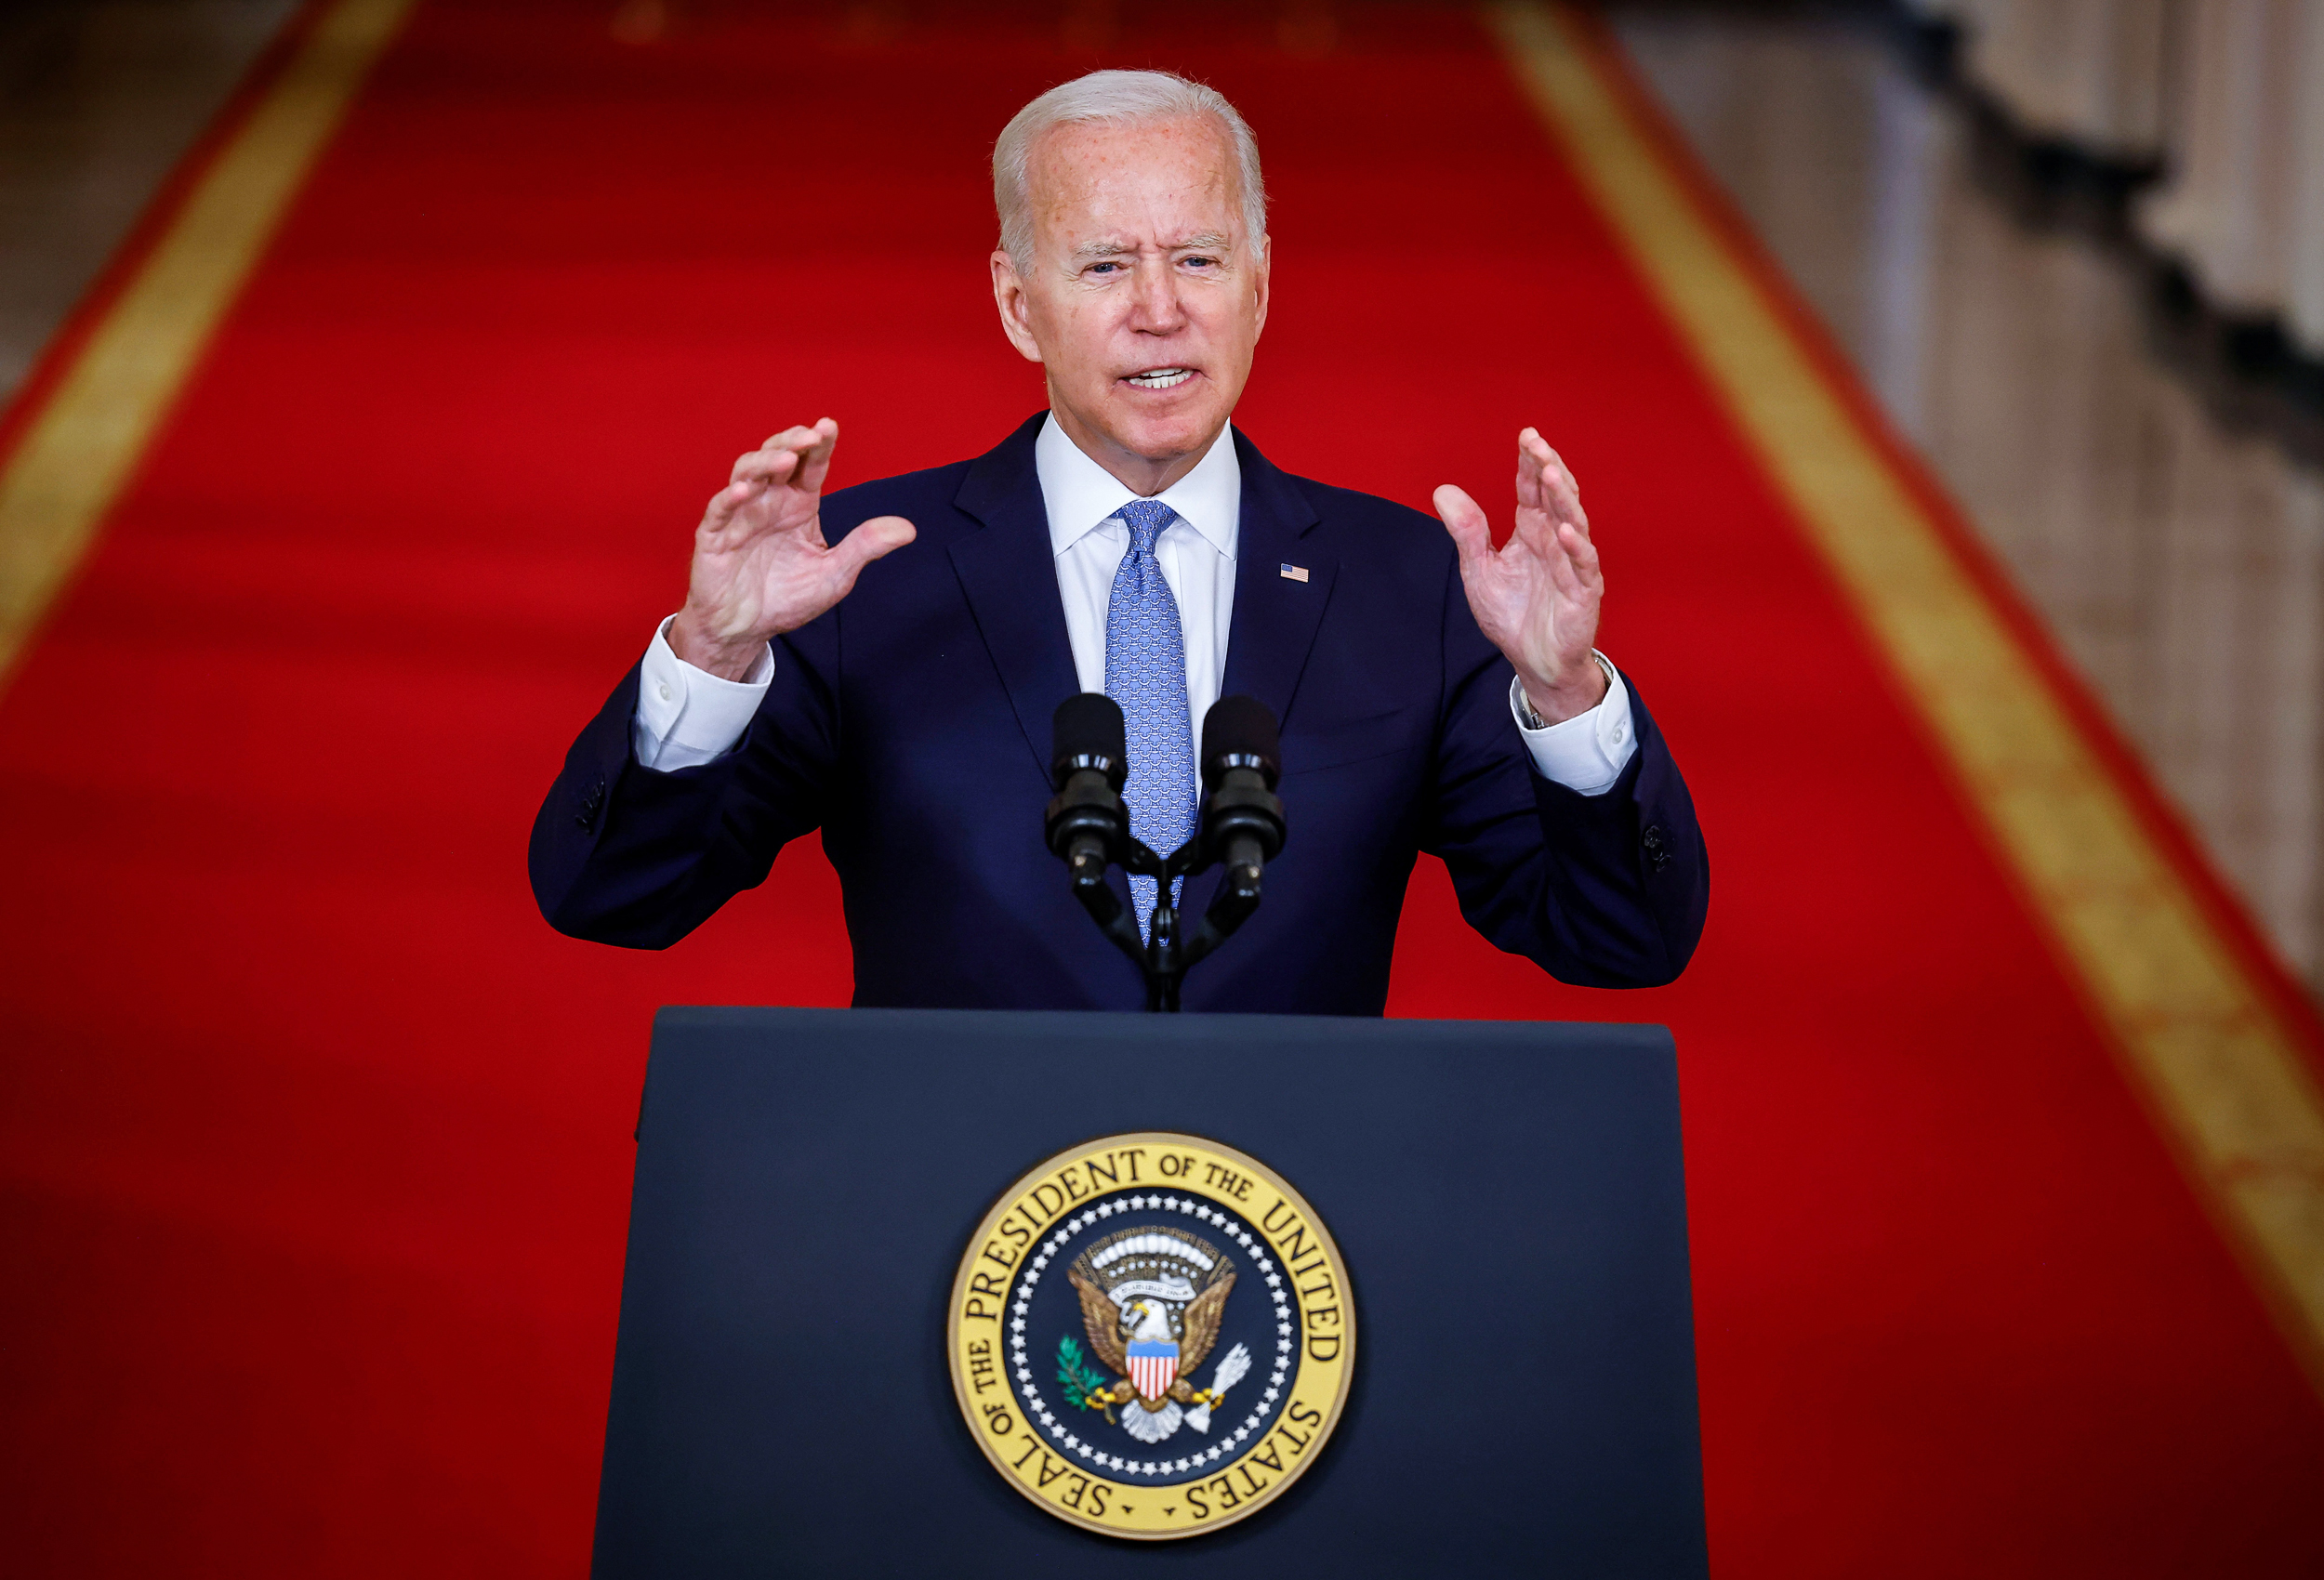 In fiery speech, Biden defends Afghanistan withdrawal: 'Not extending a forever exit'